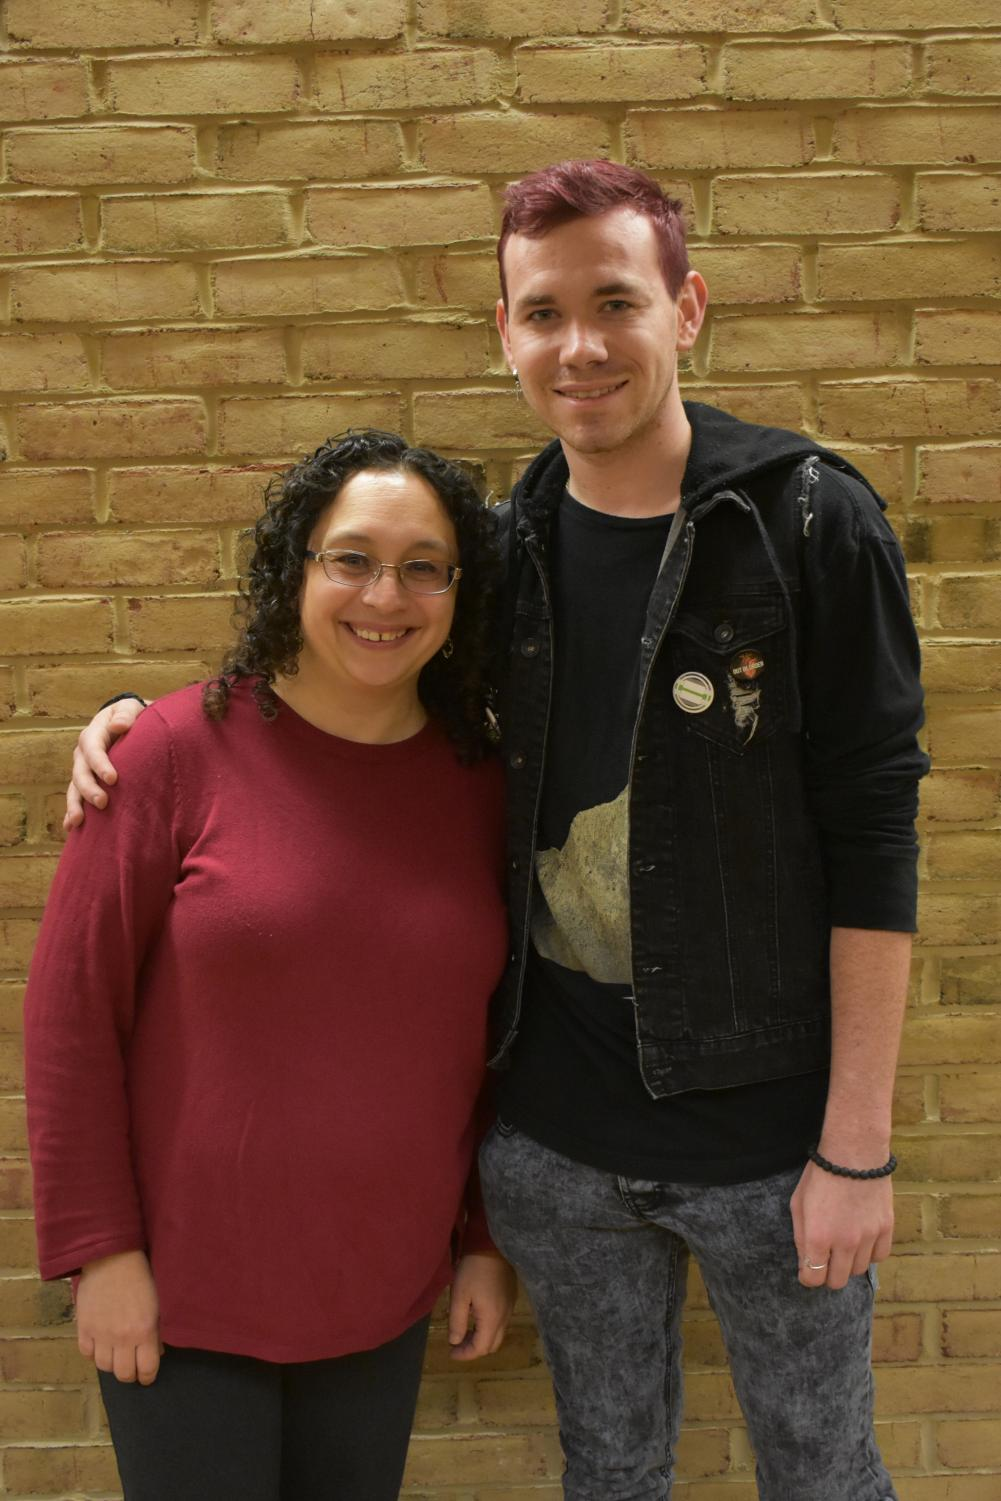 Garrett Hutchinson, a second-year psychology student and president of the Gay-Straight Alliance, has discussed LGBTQ+ issues with Rainbow Network member Rachelle Tannenbaum, a professor in the psychology department.